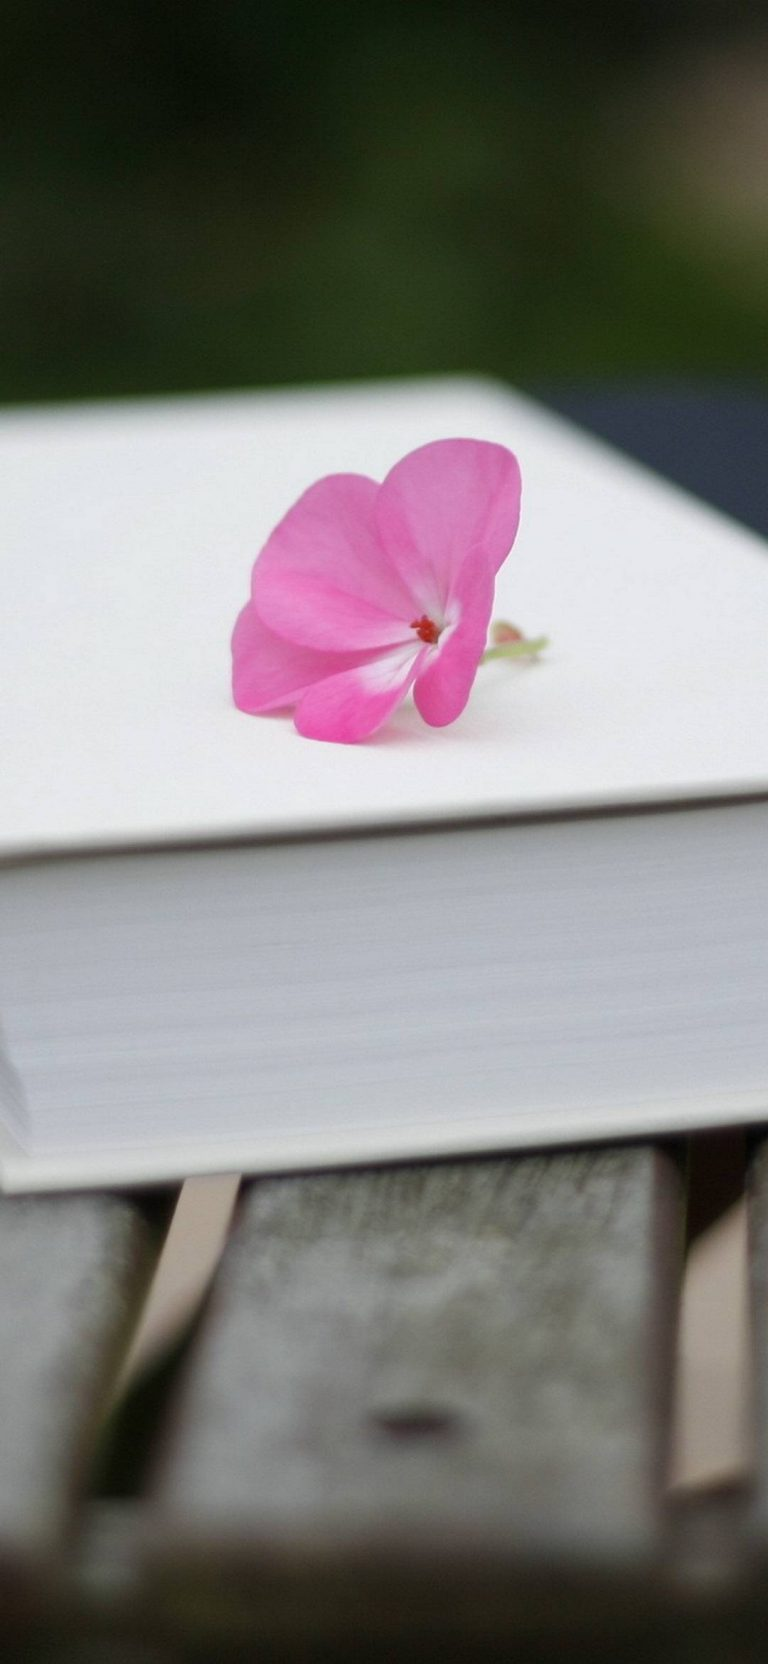 Bench Books Pink Flowers 1080x2340 768x1664